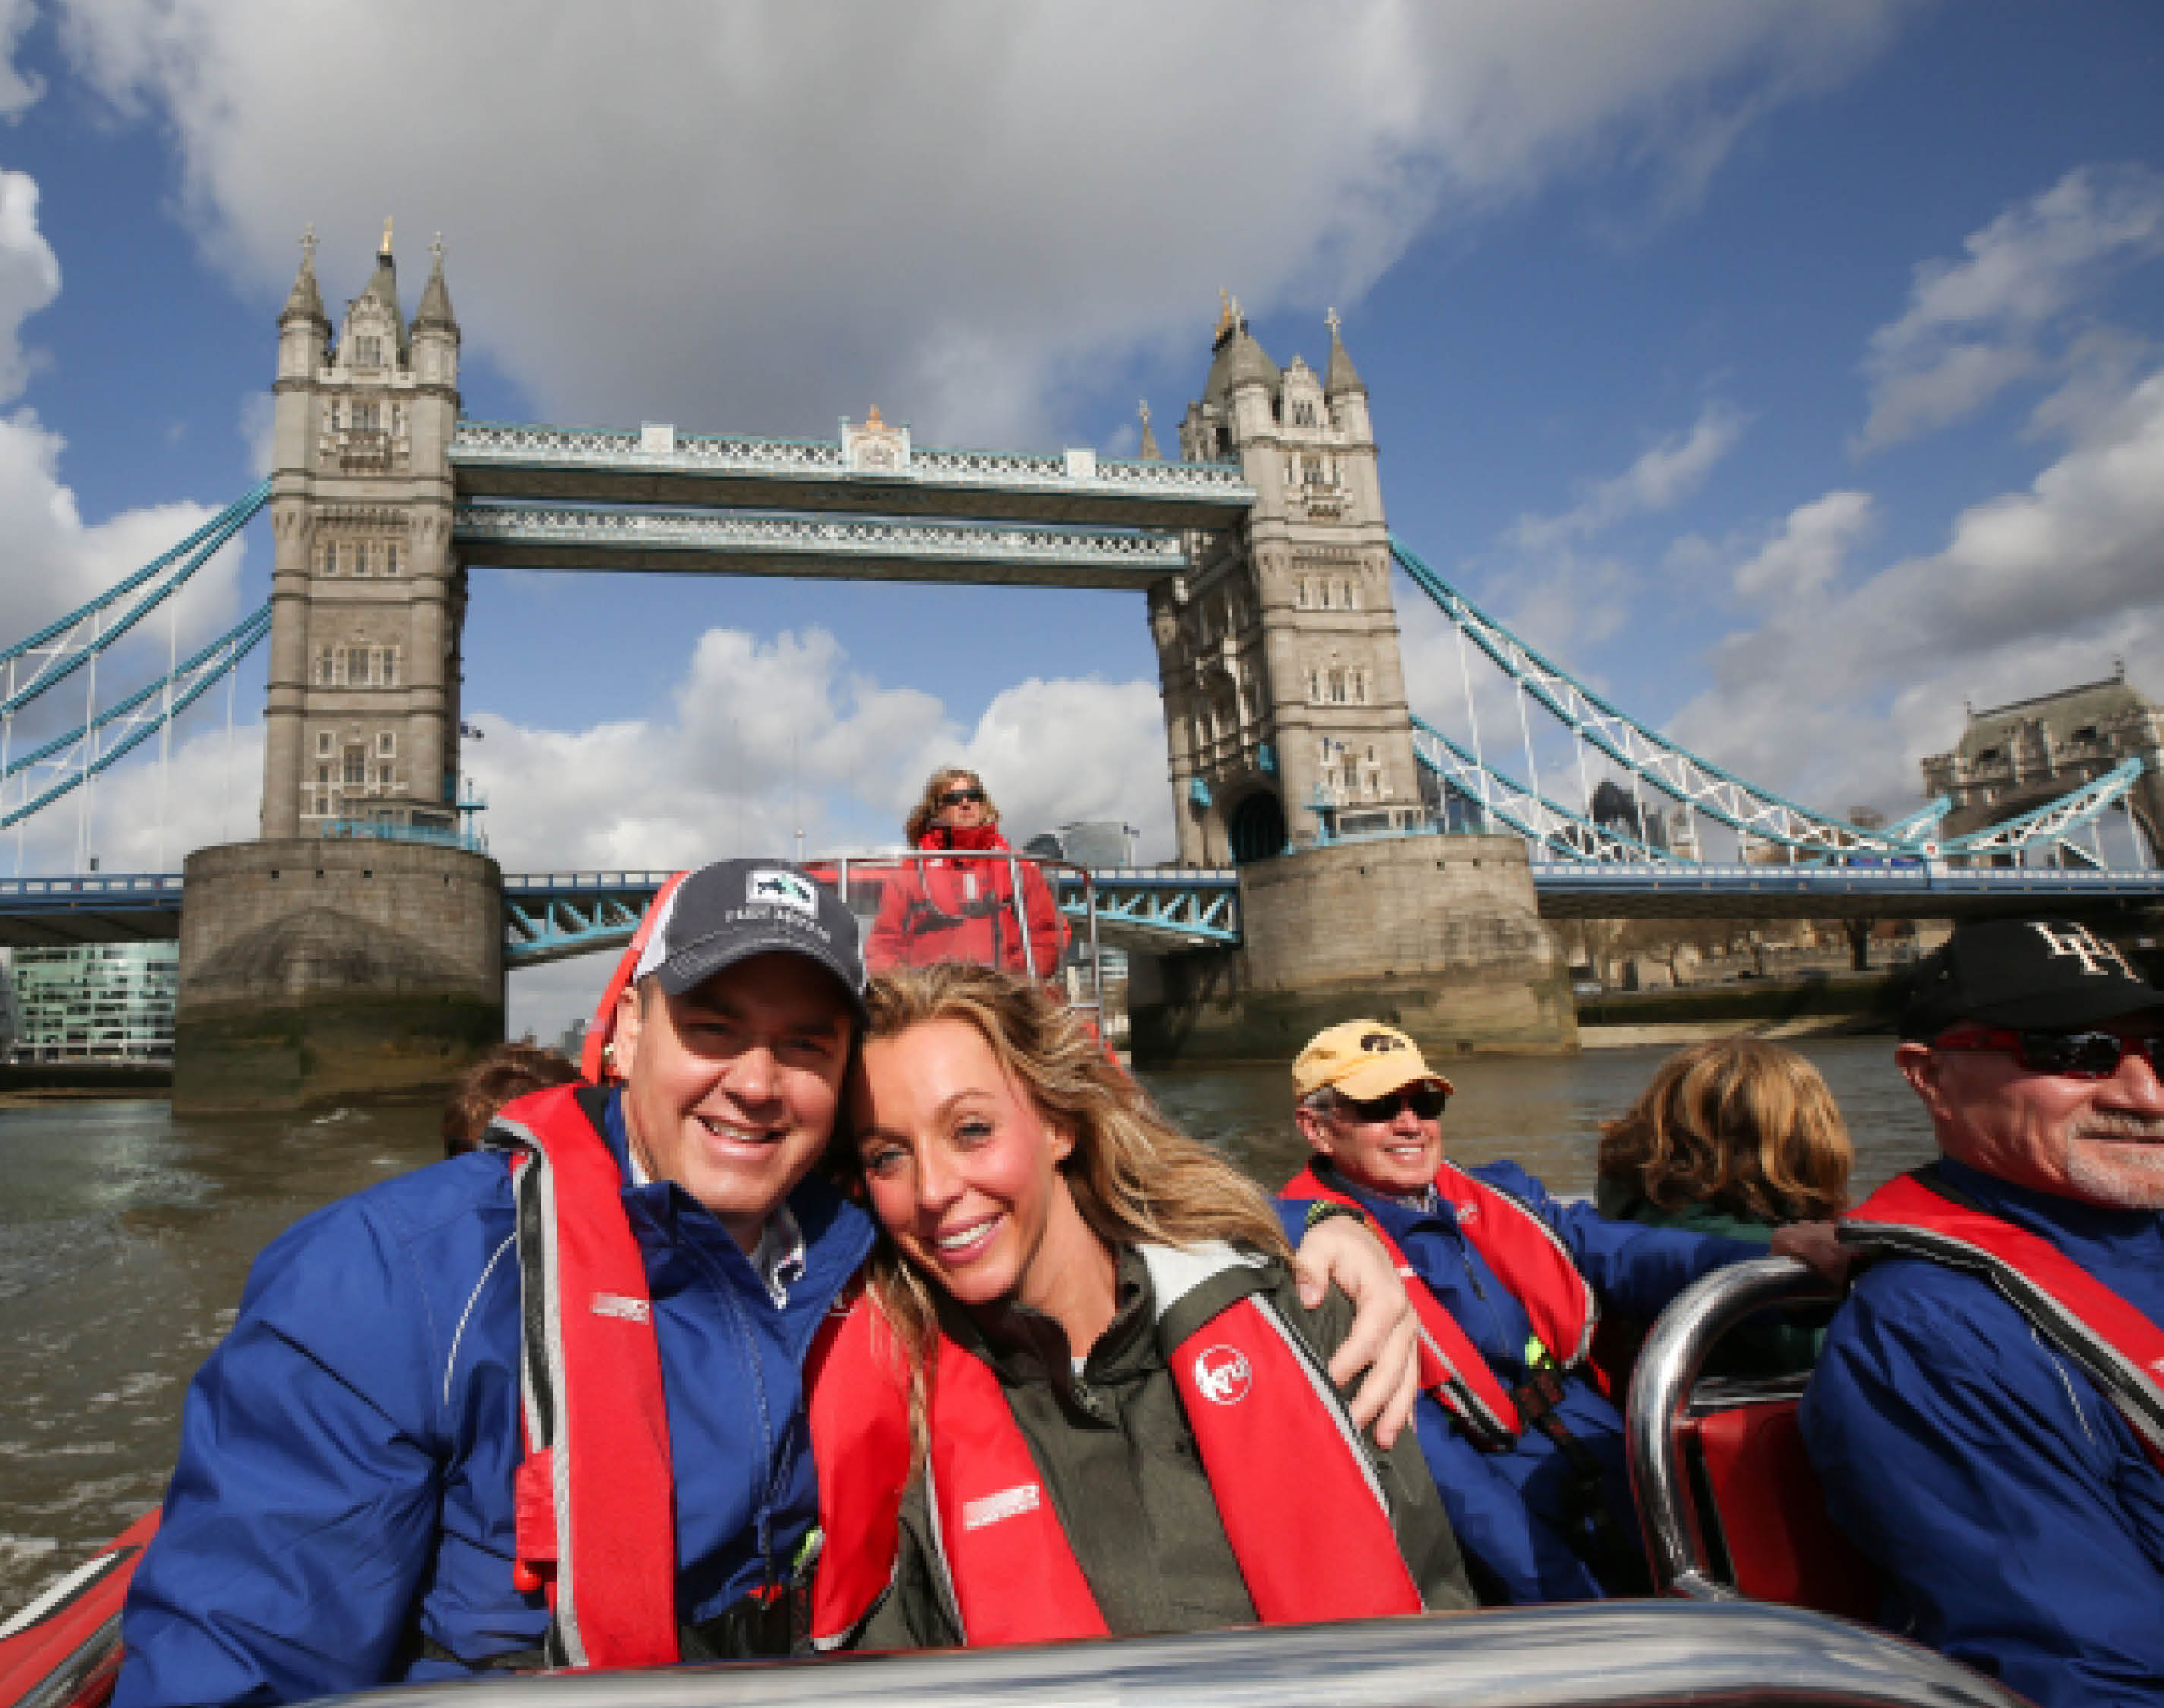 River Thames tour in London.